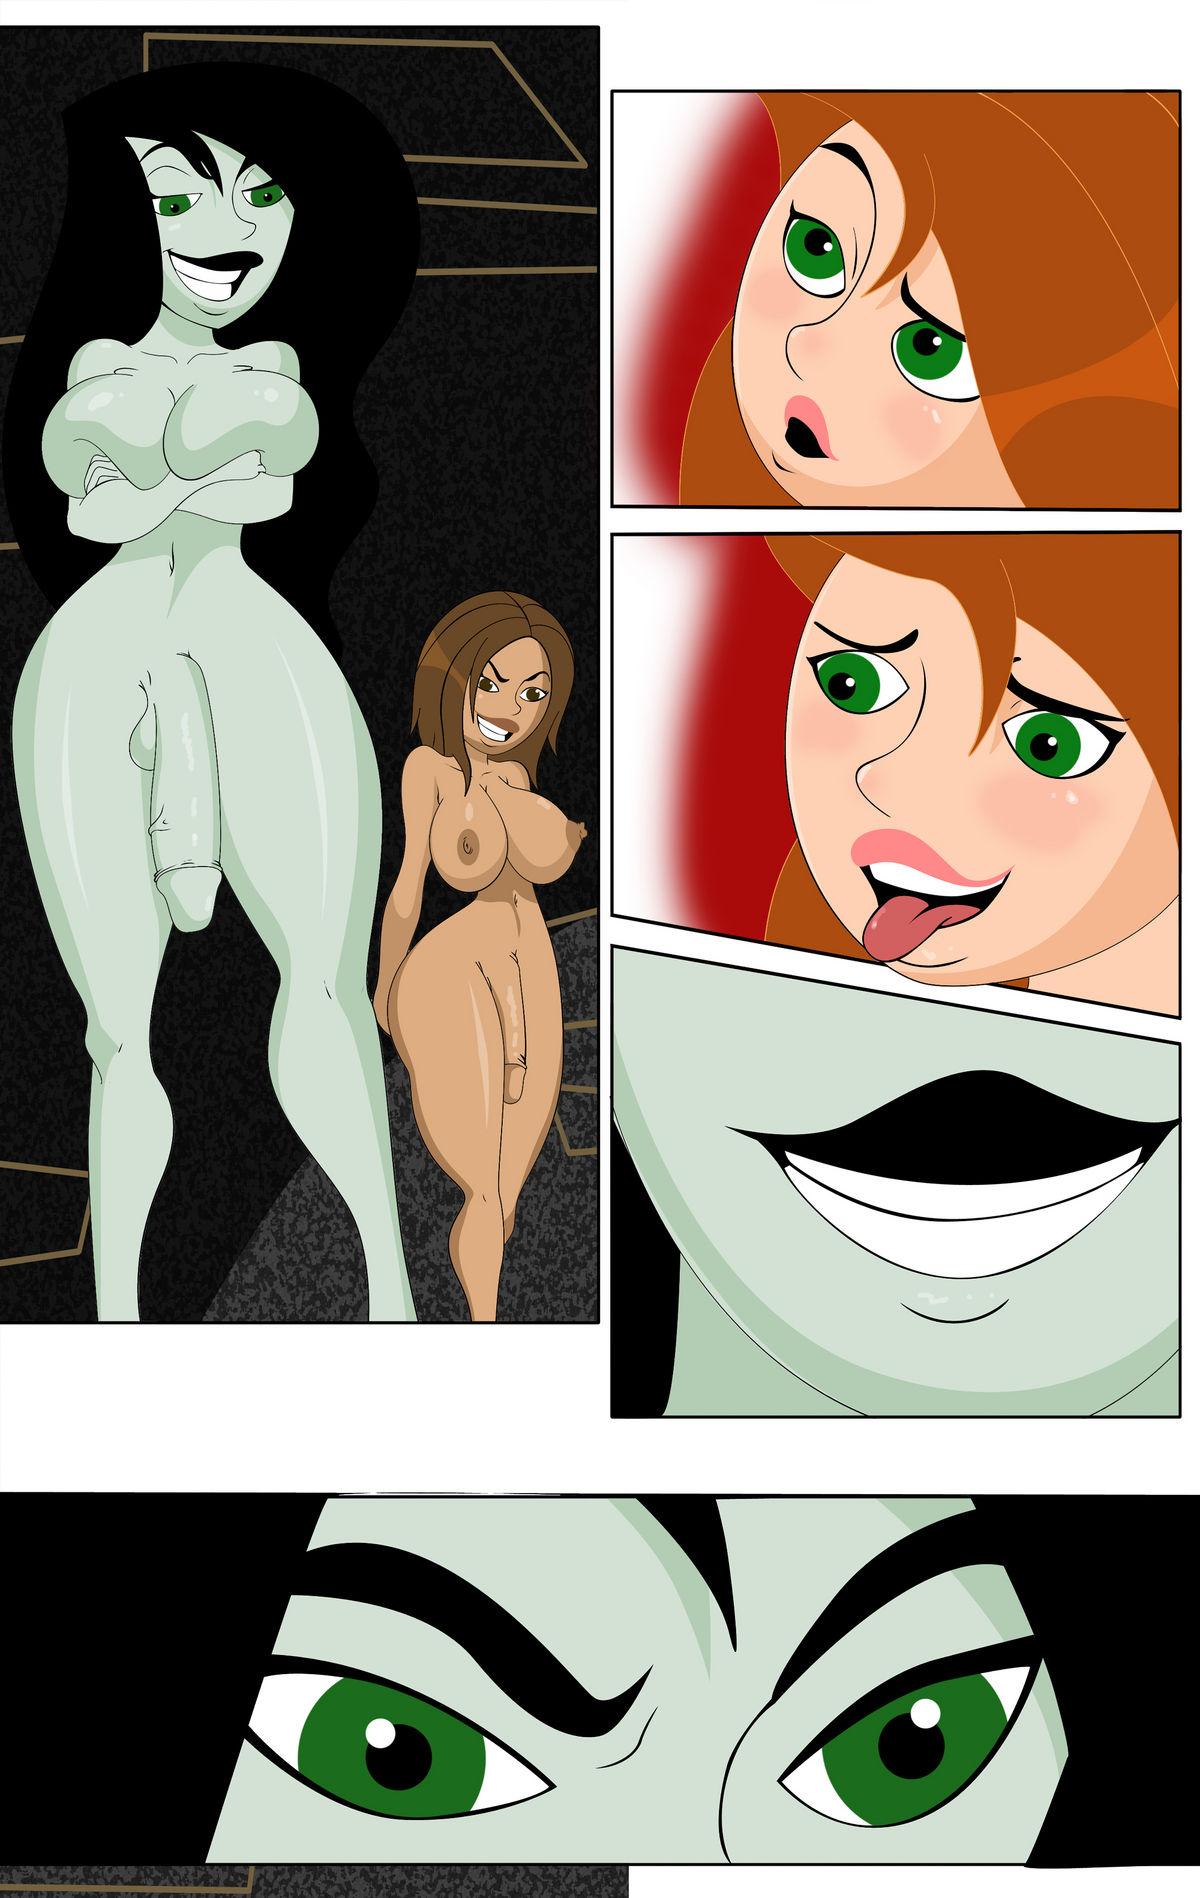 Kim Plausible 3 (Kim Possible)